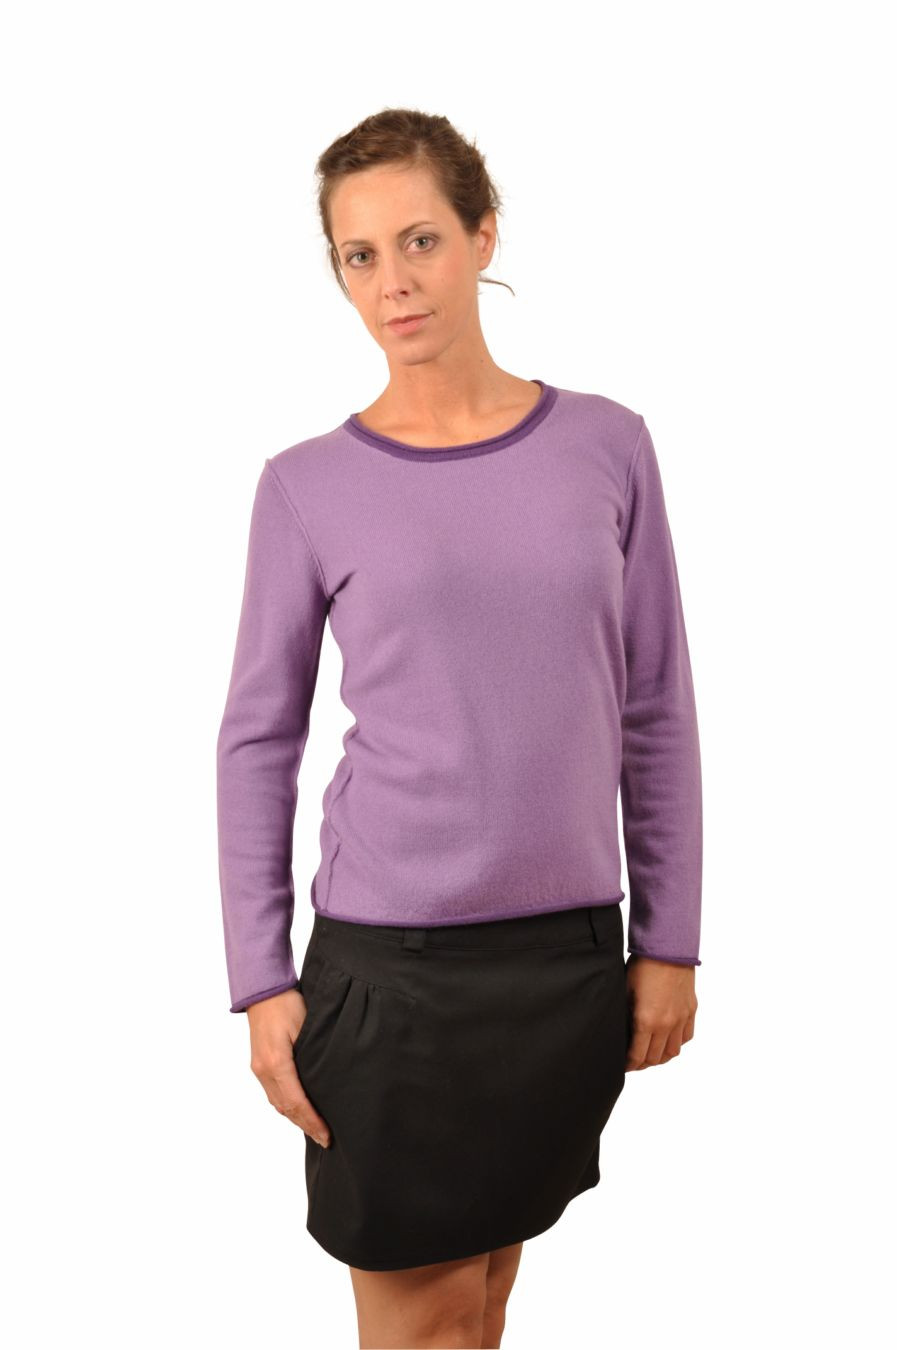 Pull cachemire femme ARIANE violet lilas